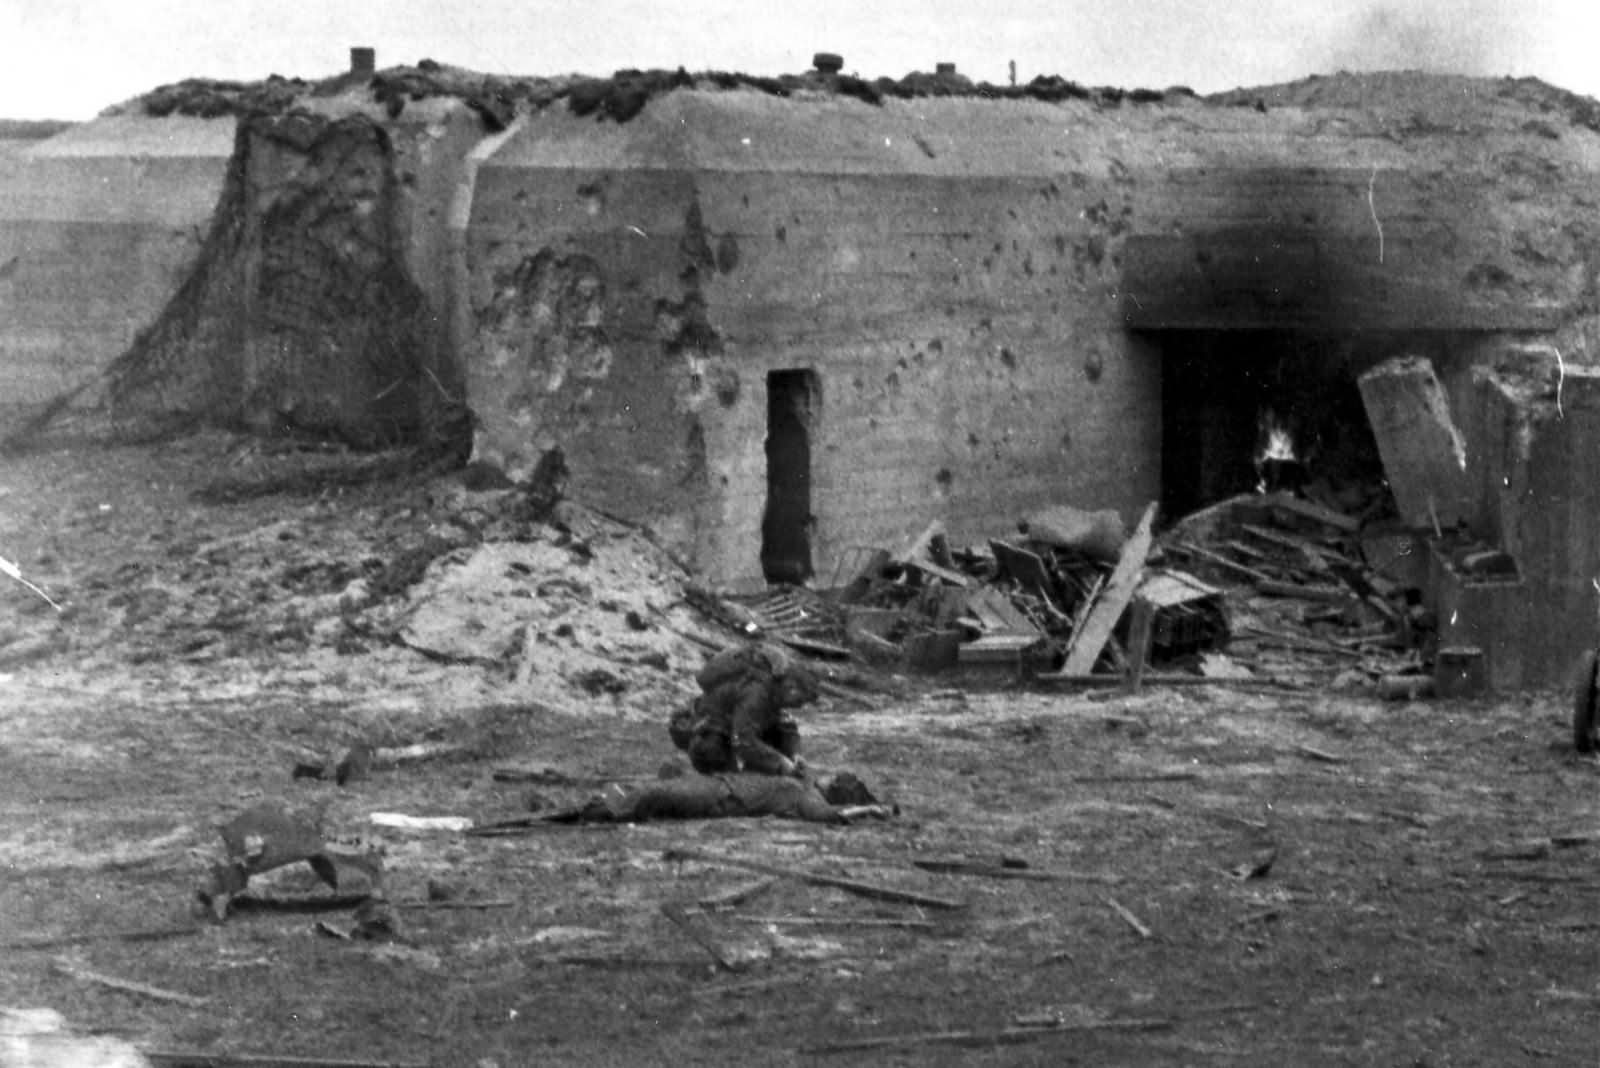 German Bunker Normandy June 6 1944 D-Day